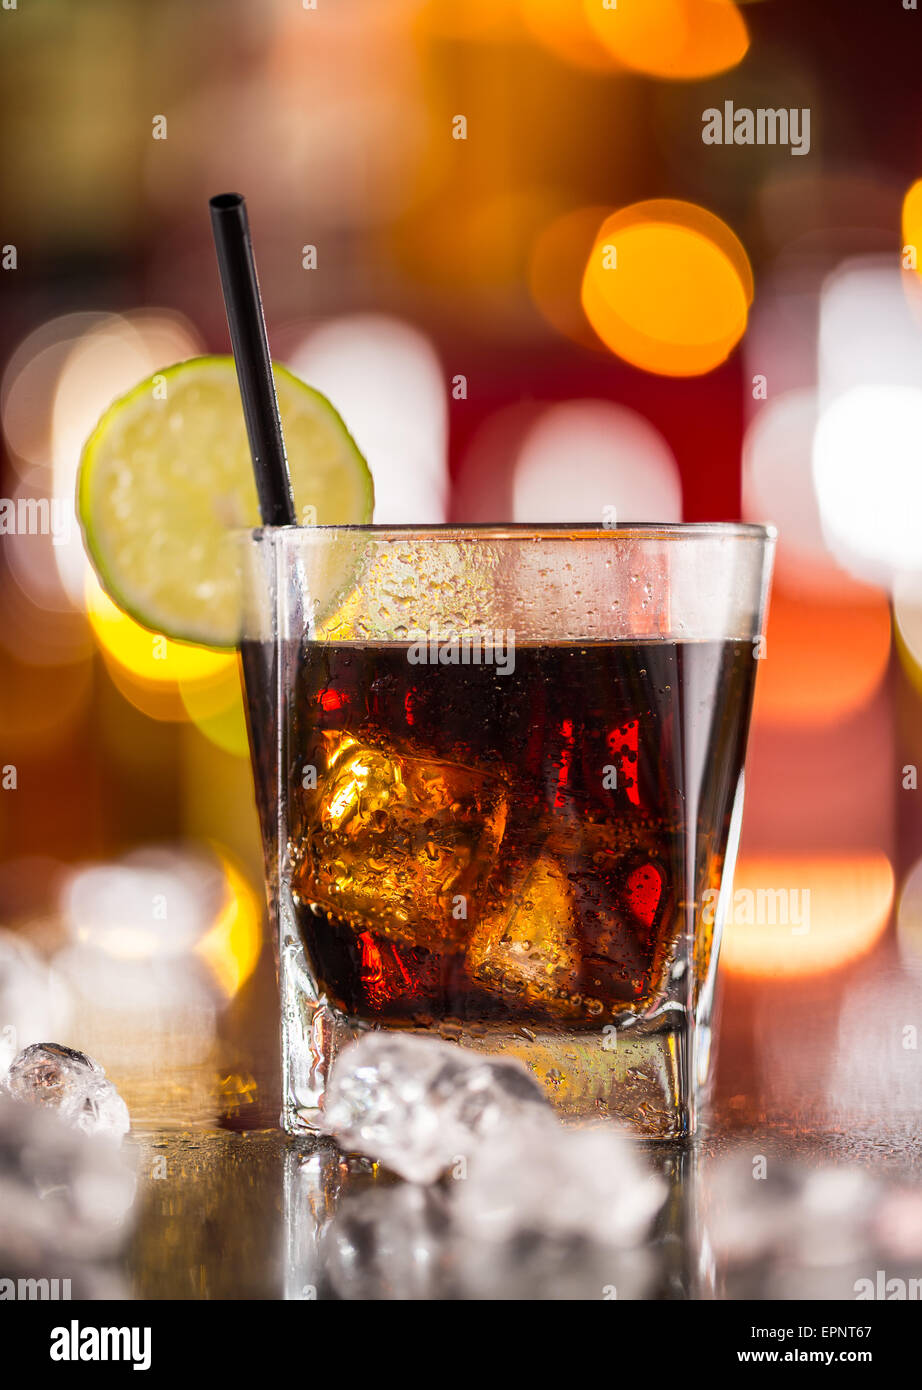 Glass of cola drink on bar counter with ice cubes - Stock Image